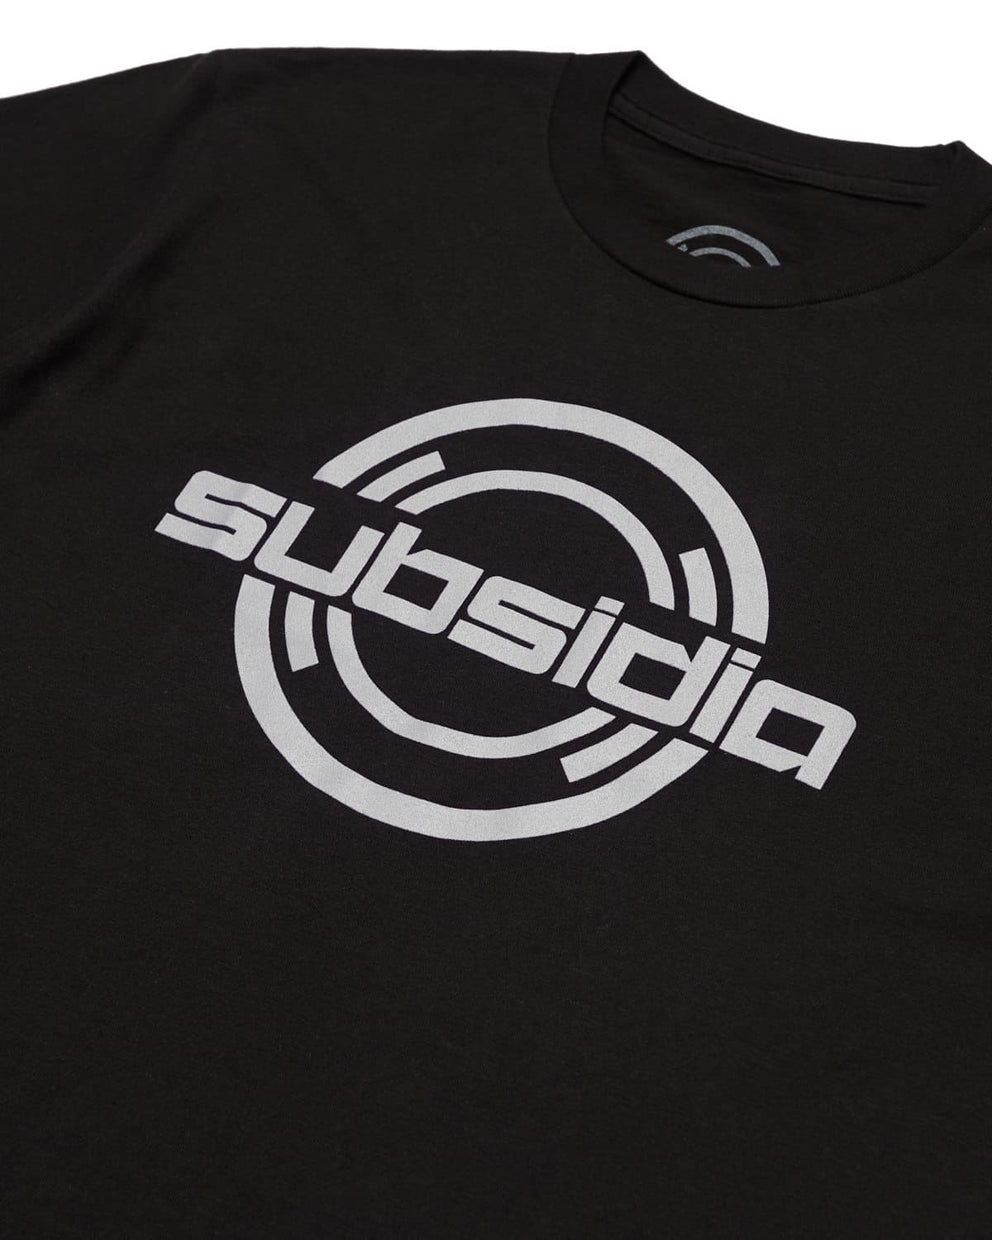 Subsidia 'Large Logo' Tee - Black/White